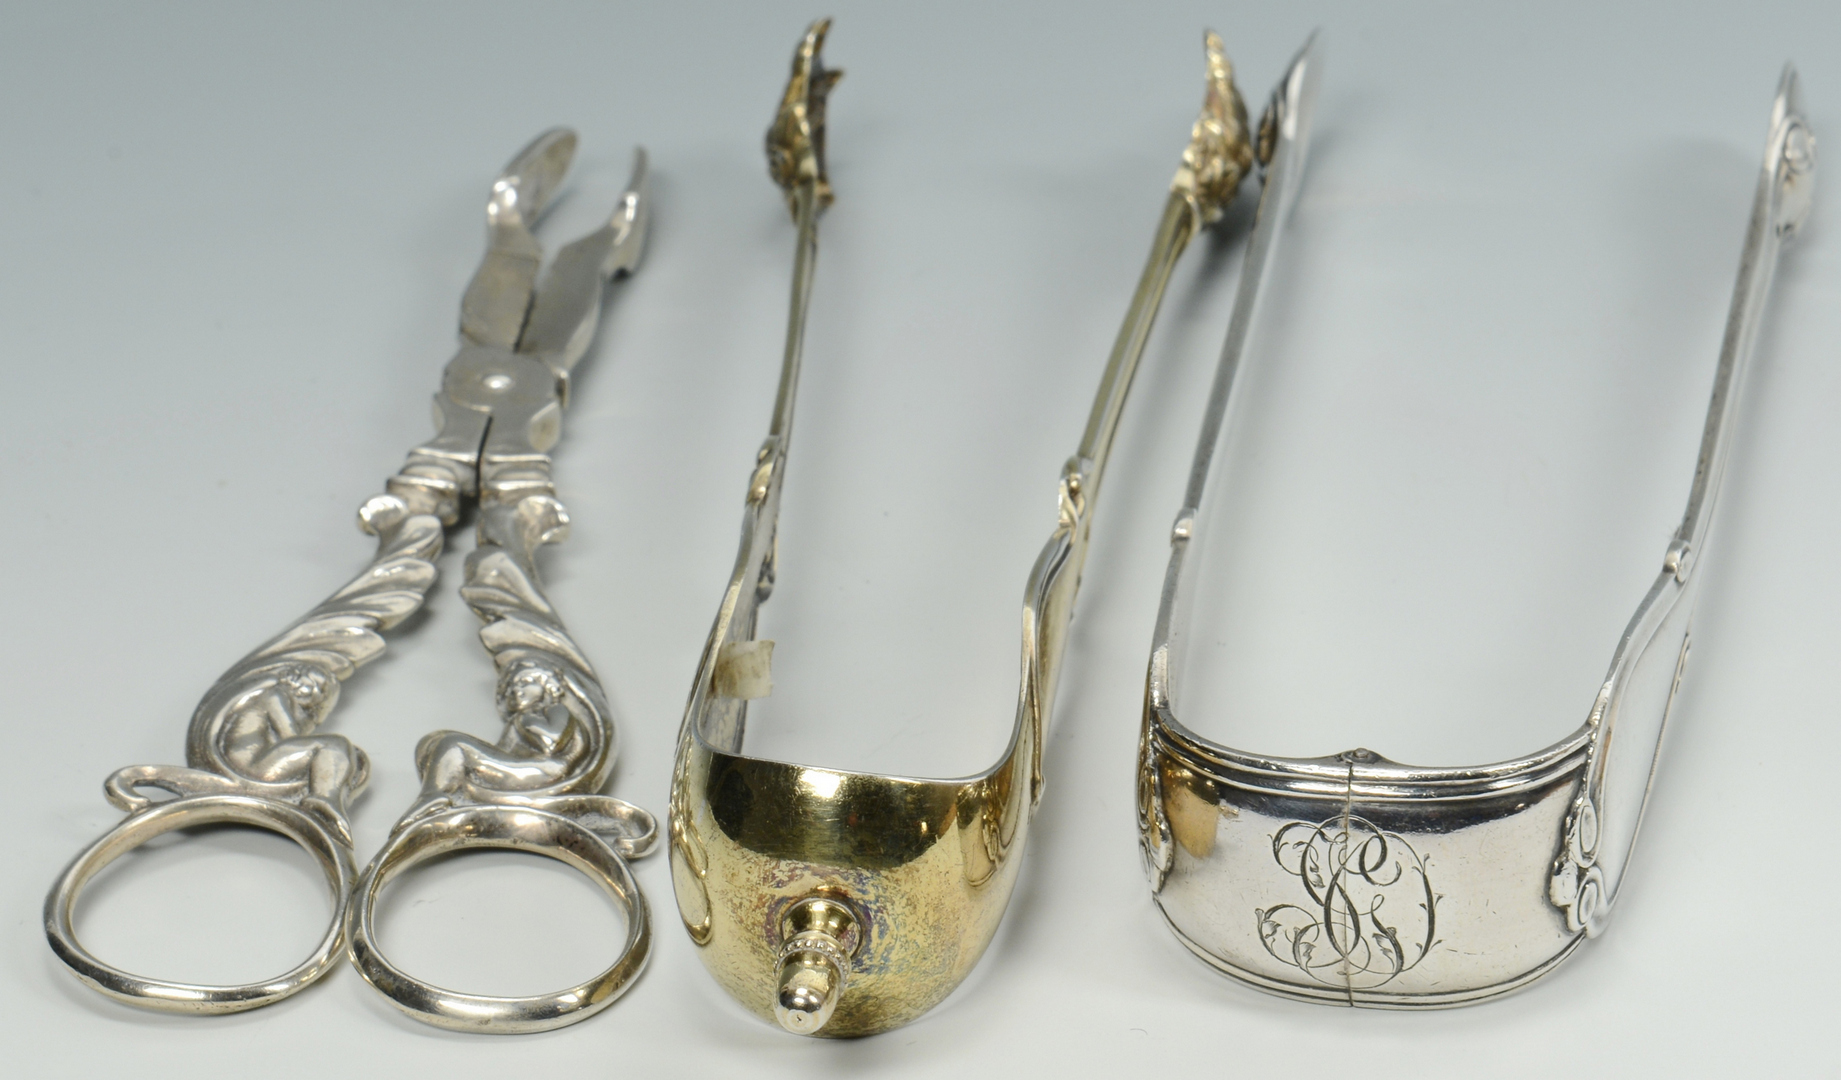 Lot 3088197: 3 Pairs French Sugar Tongs